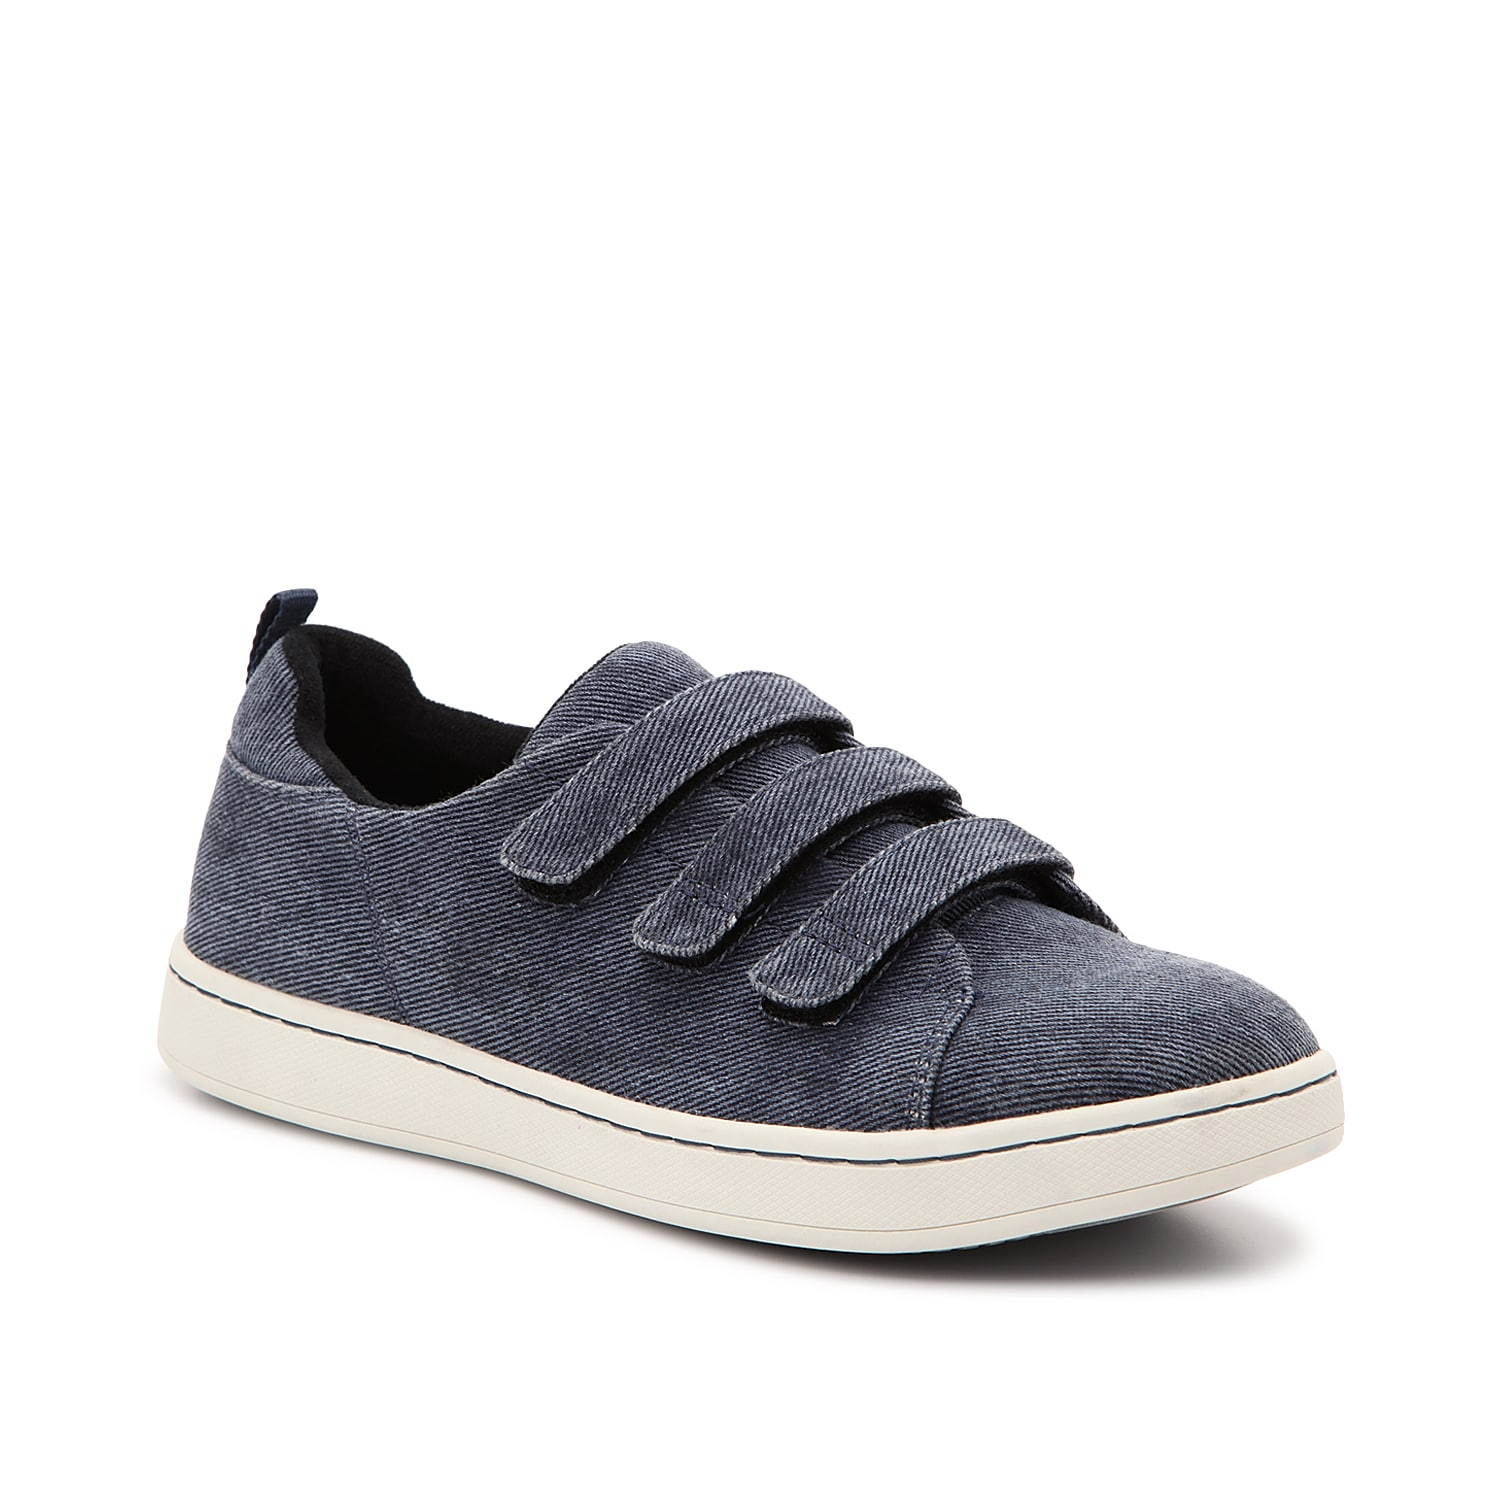 Complement your casual shoe collection with the Ski sneaker from Drew. The denim upper and hook and loop straps create a fresh finishing touch!